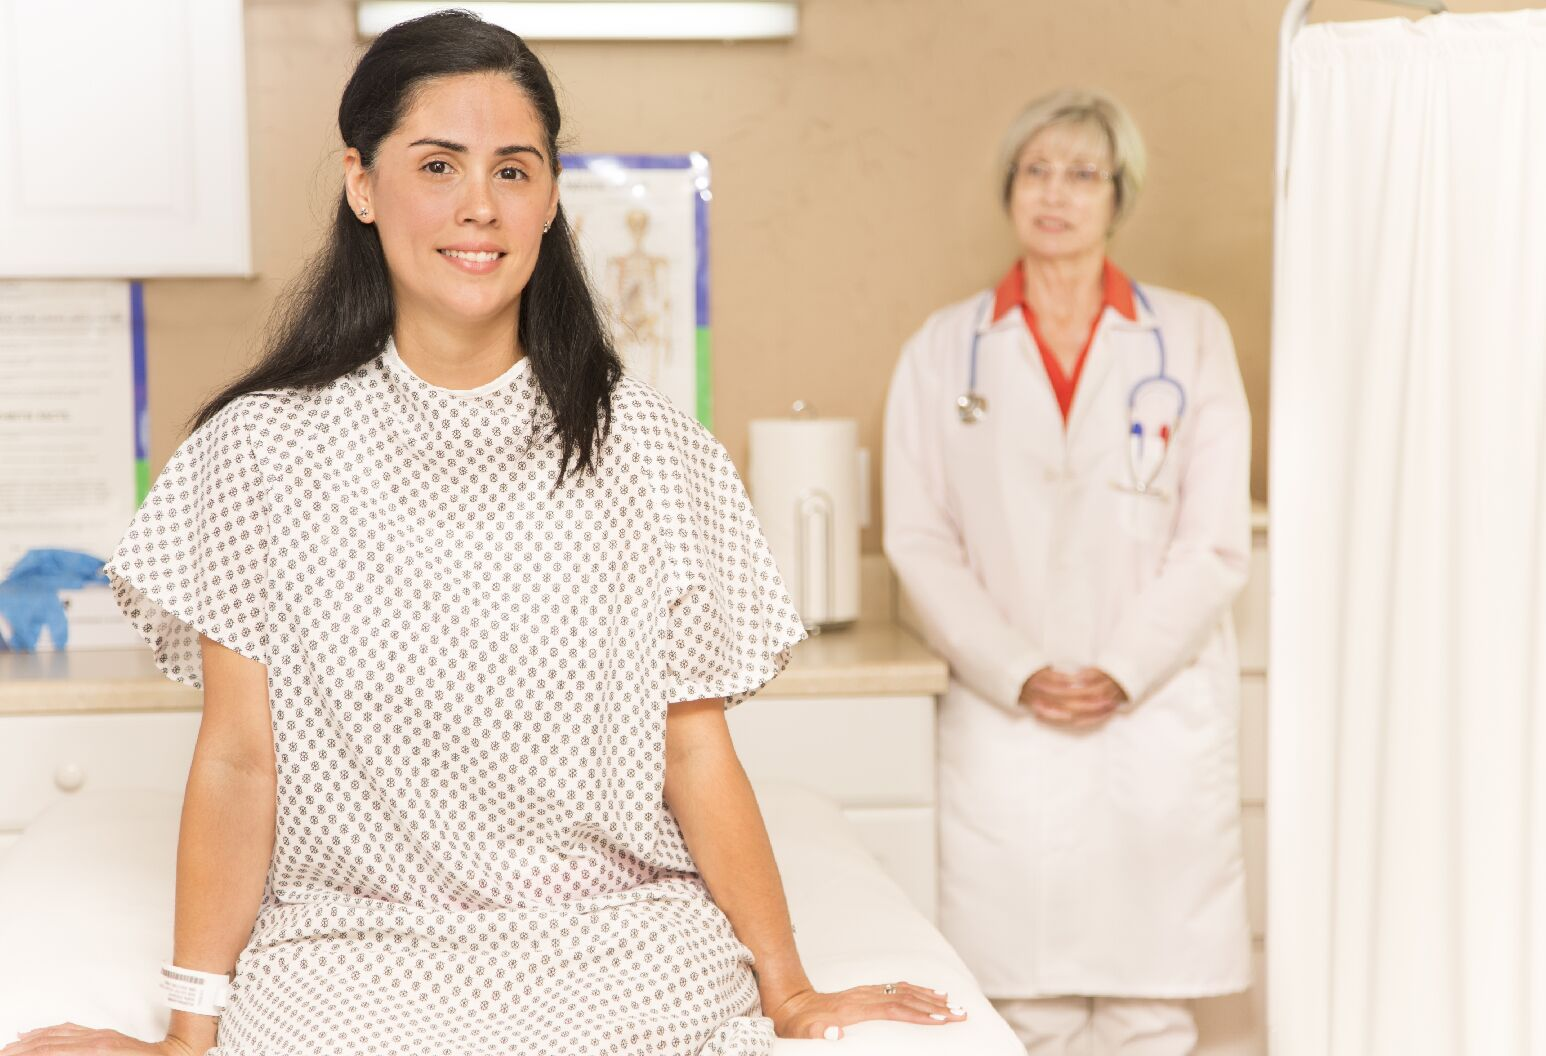 woman in hospital gown sitting on table with doctor in background